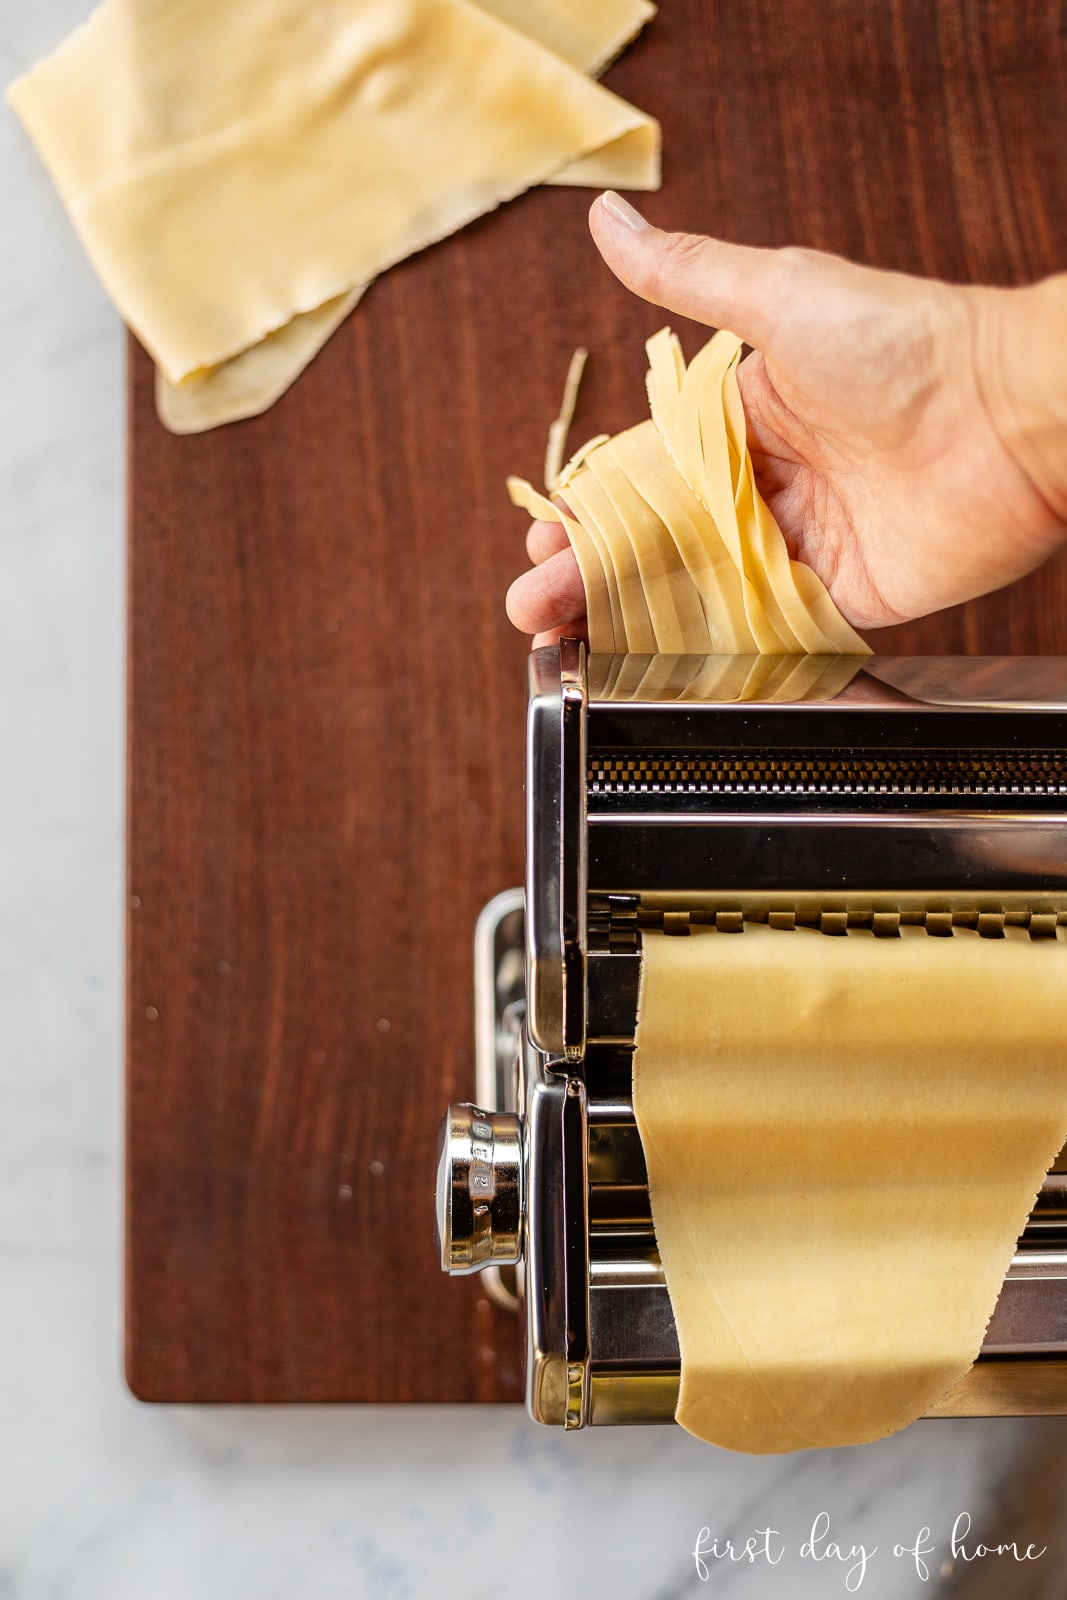 Homemade pasta noodles coming out of pasta machine